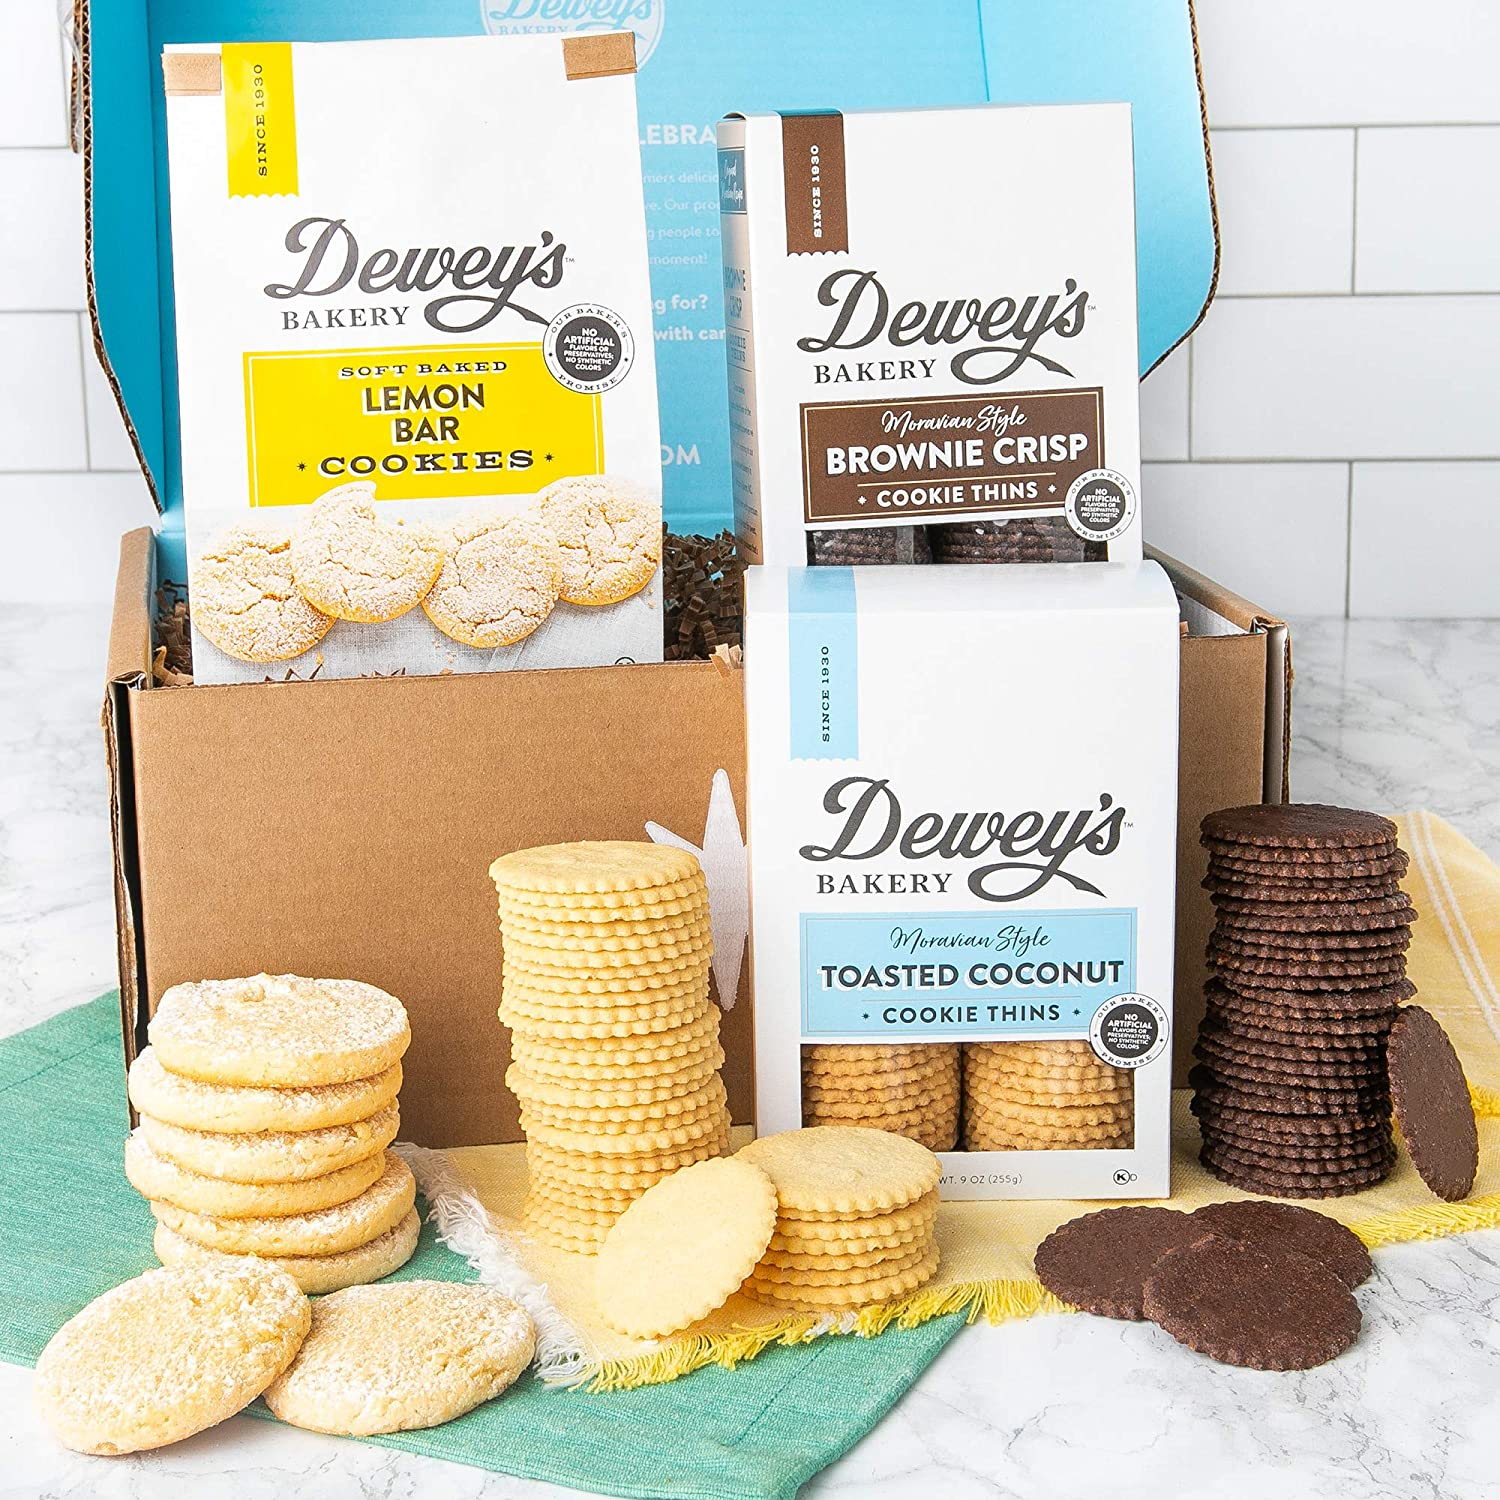 Dewey's Bakery Cookie Gift Basket - Moravian Cookies, Lemon Bar Soft Baked Cookies - 3 Piece Cookie Gift Box | Southern Treats for Birthday, Mother's Day, Get Well, Care Packages, Father's Day